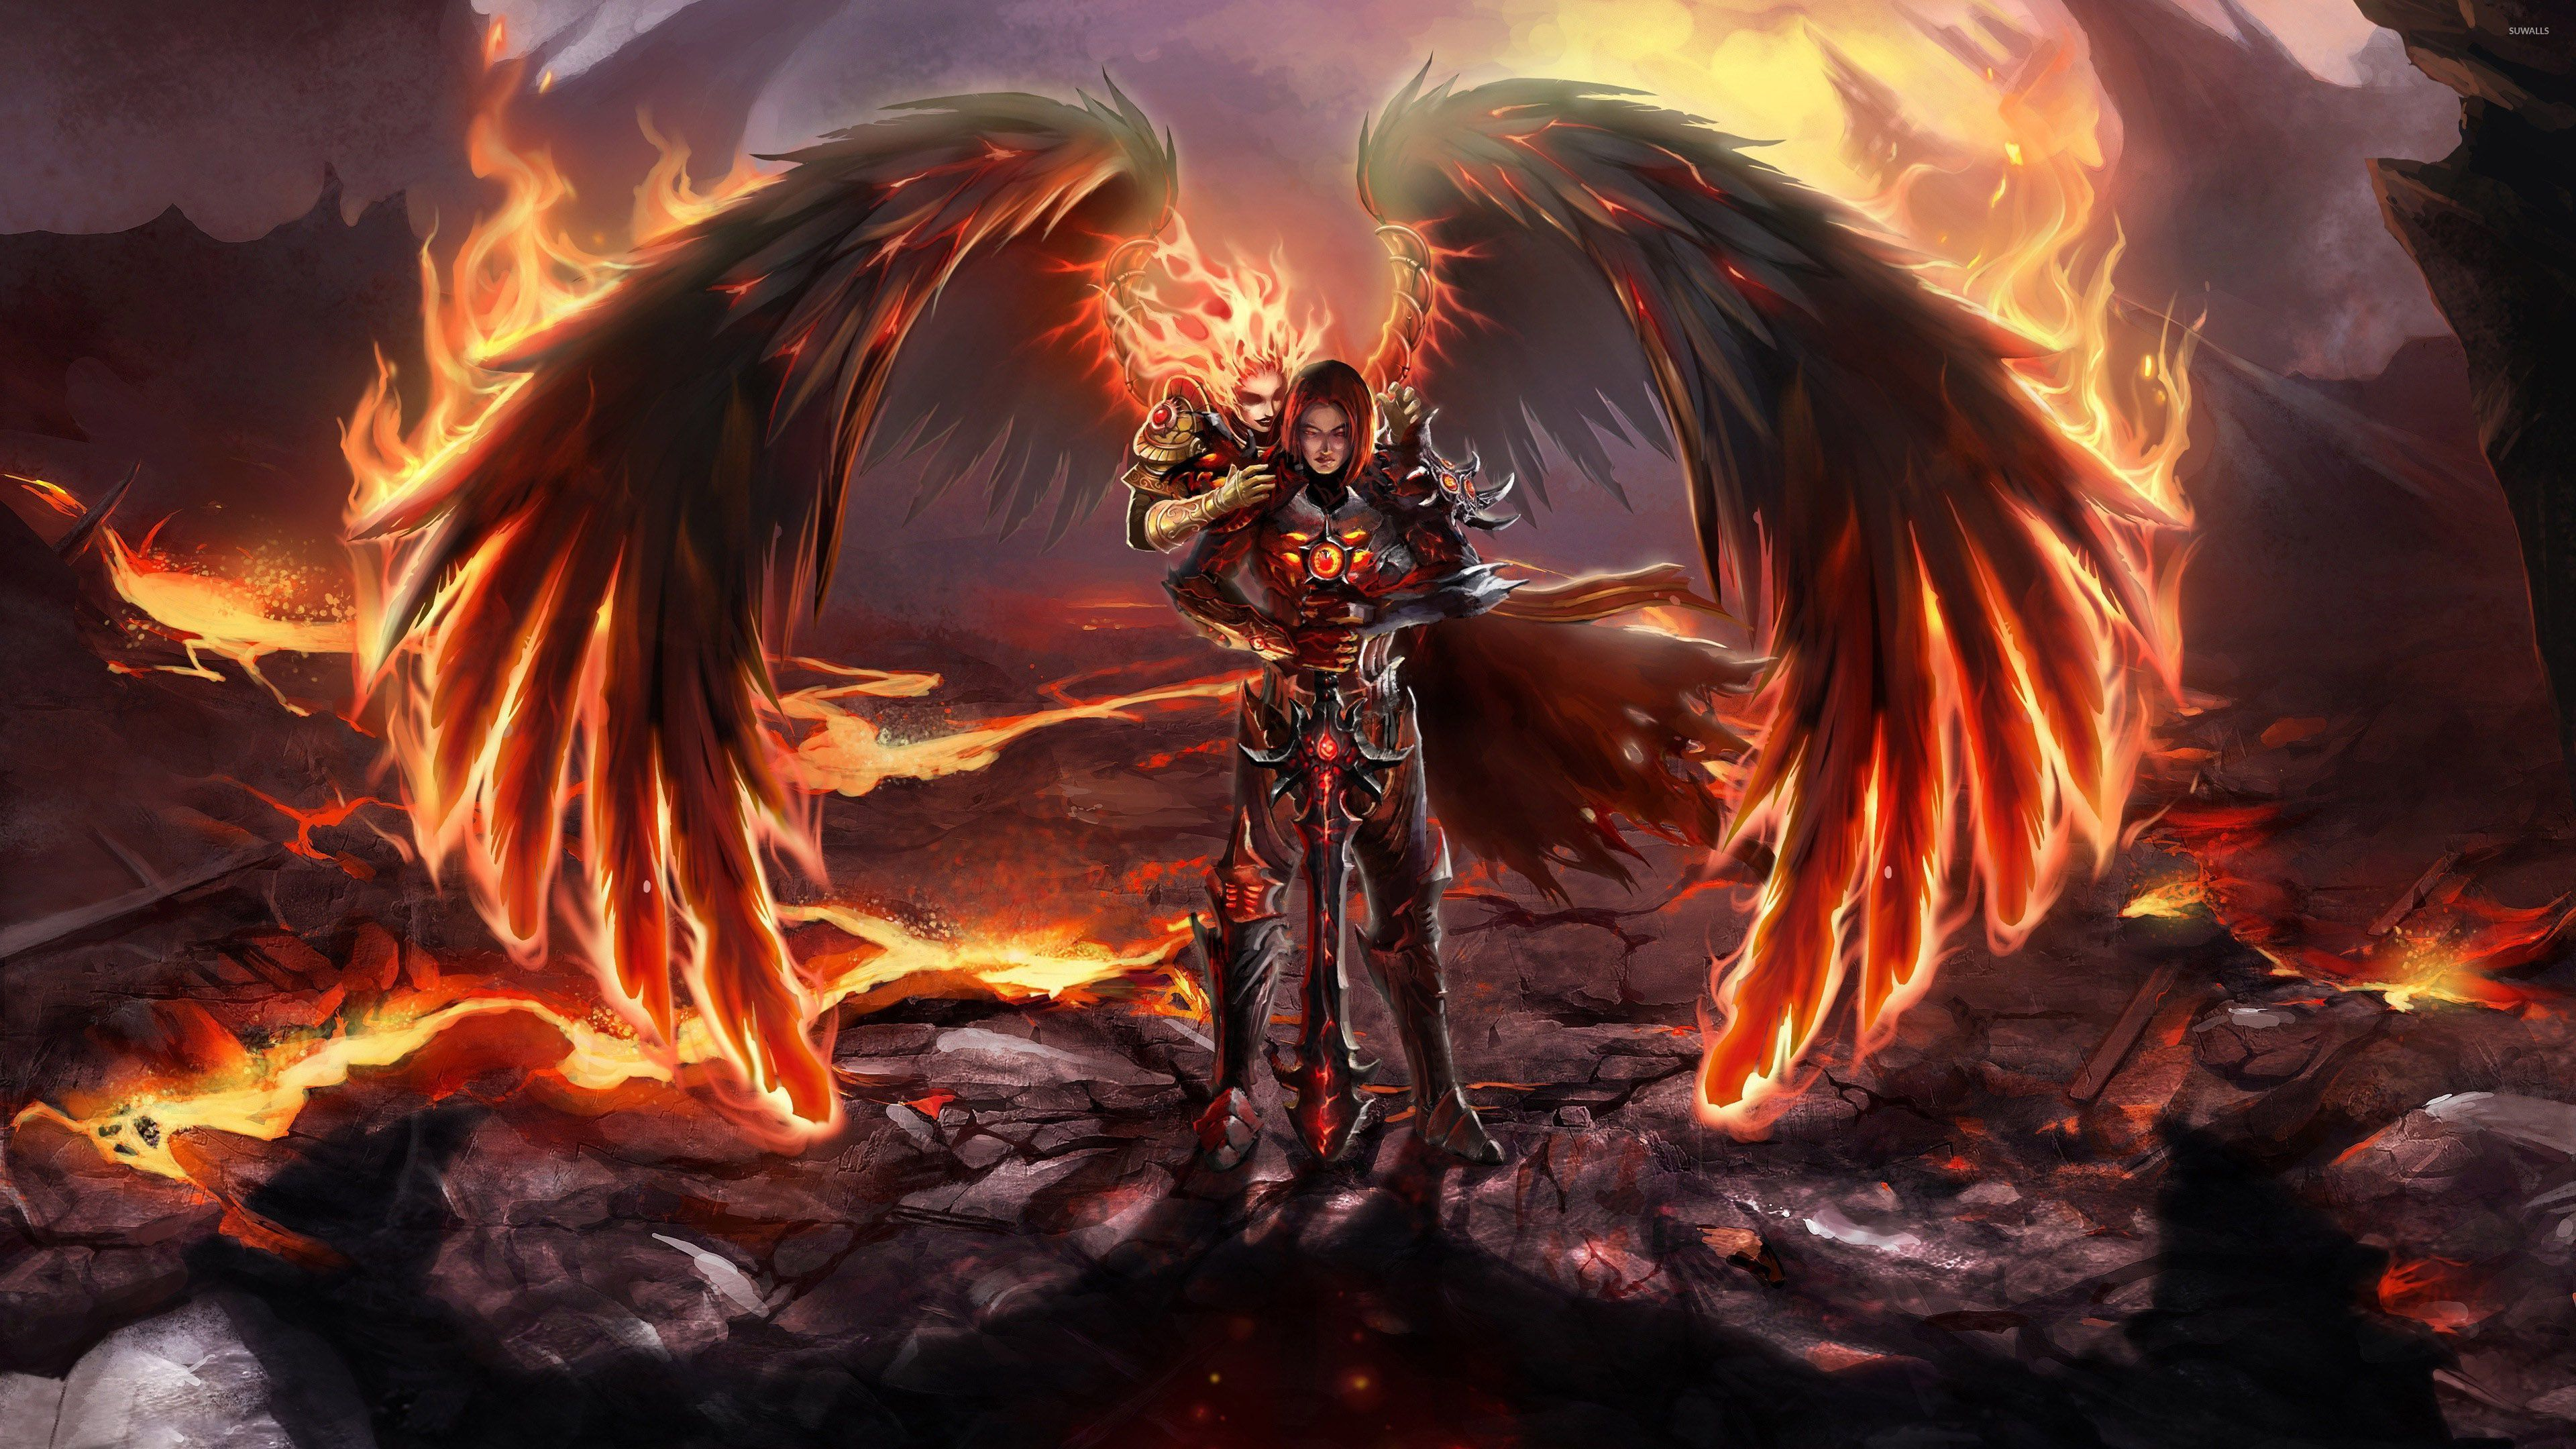 Might Magic Heroes Vi Wallpaper Male Angels Hero Wallpaper Light In The Dark